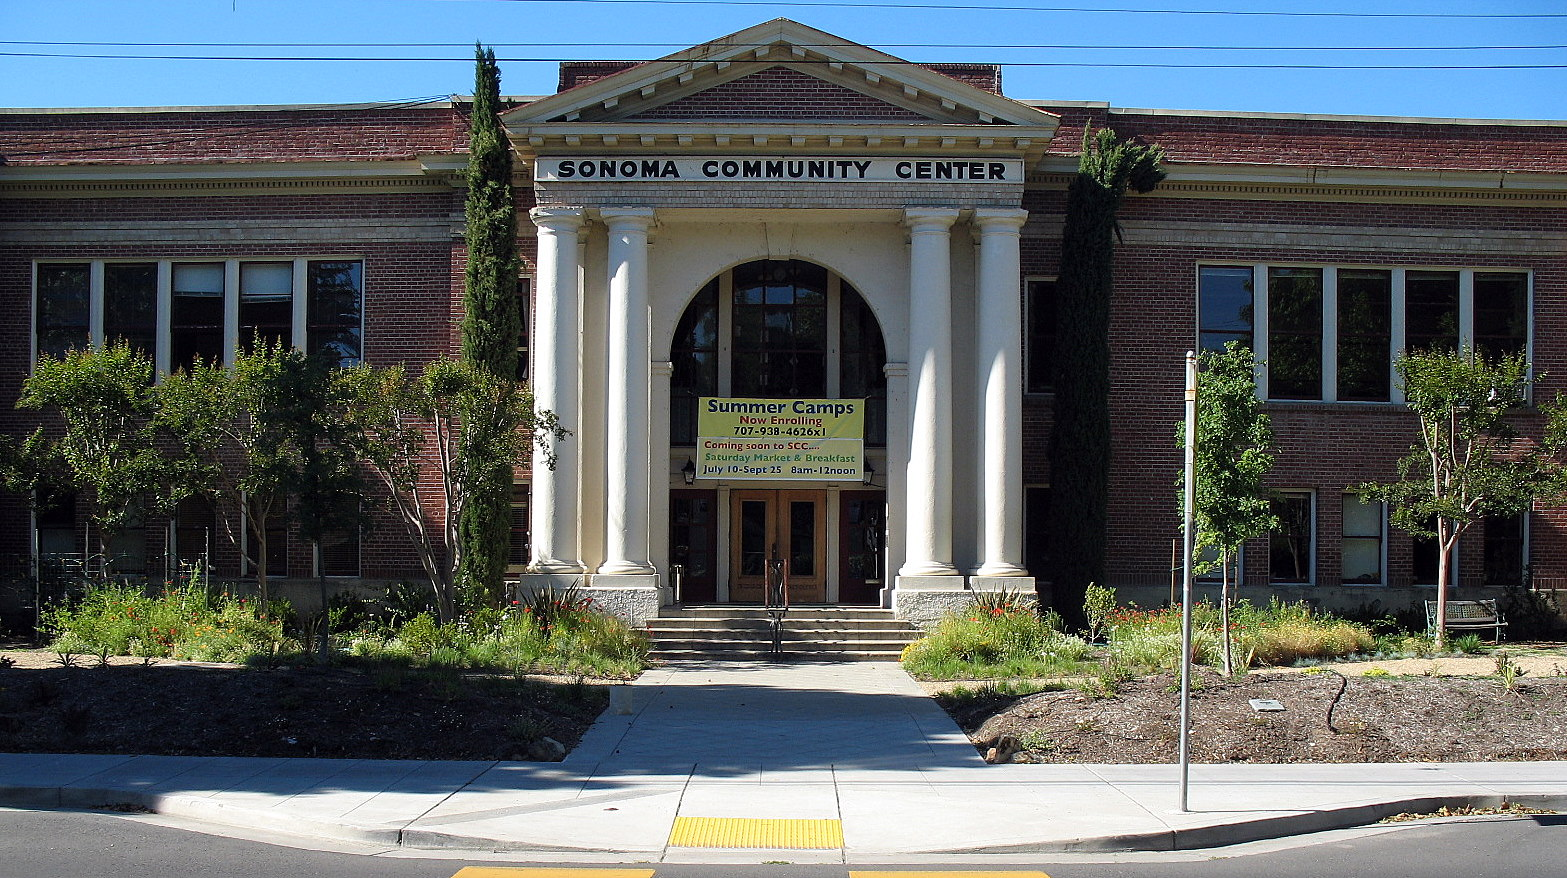 Community centre - Wikipedia